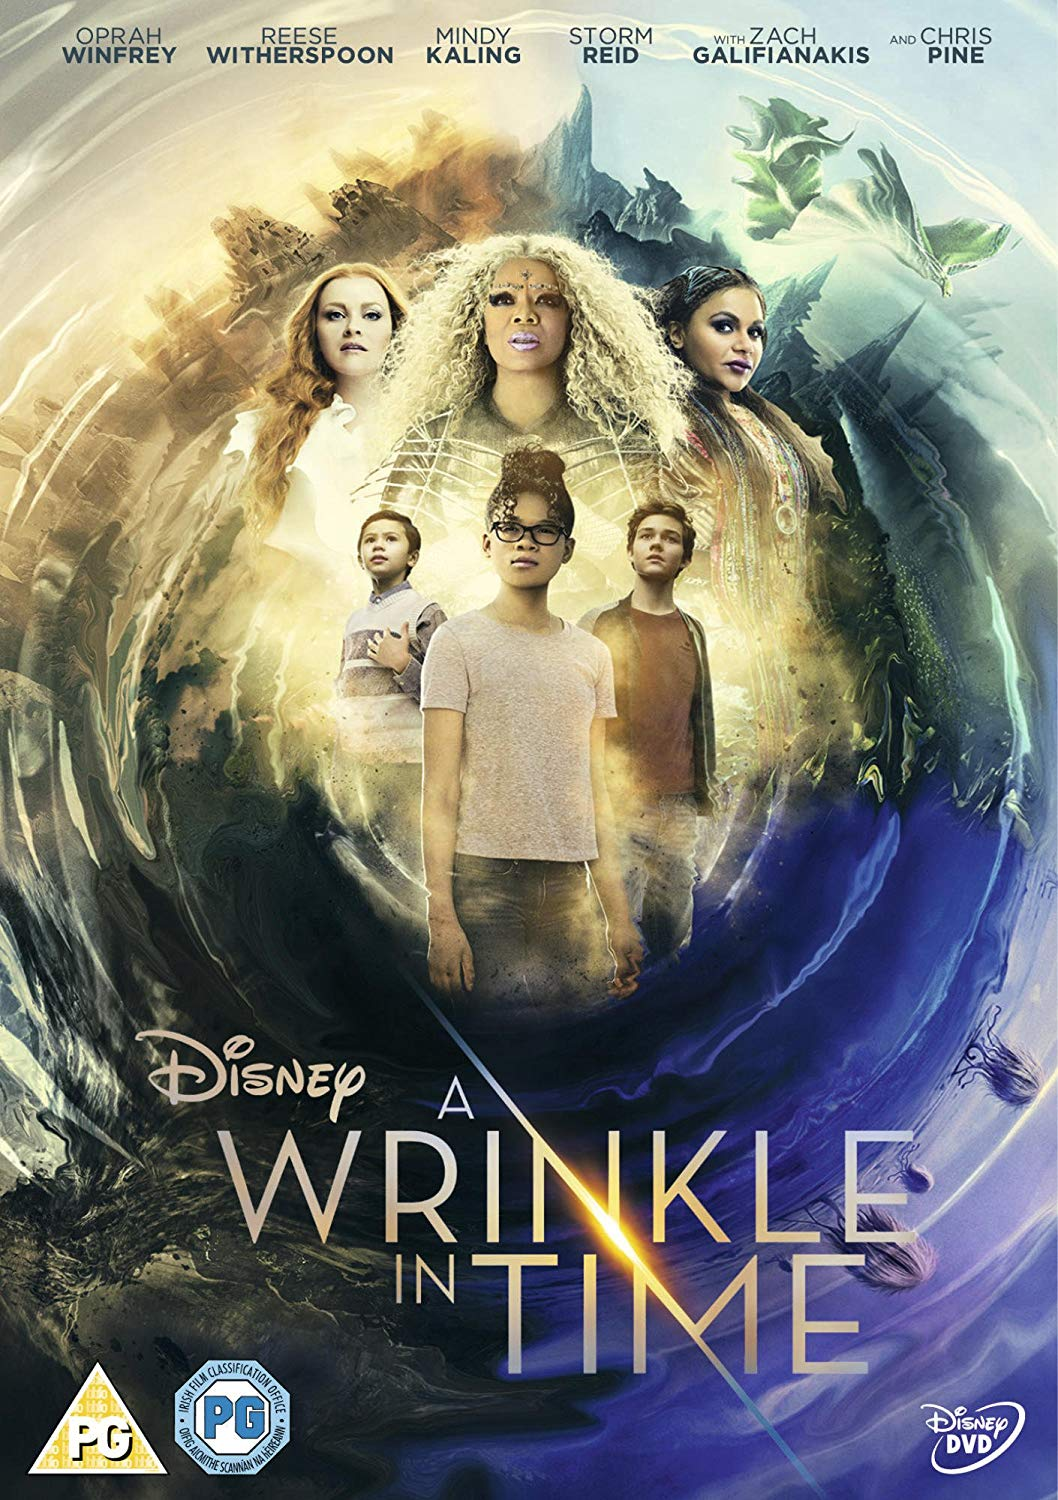 boom competitions - win A Wrinkle in Time on DVD